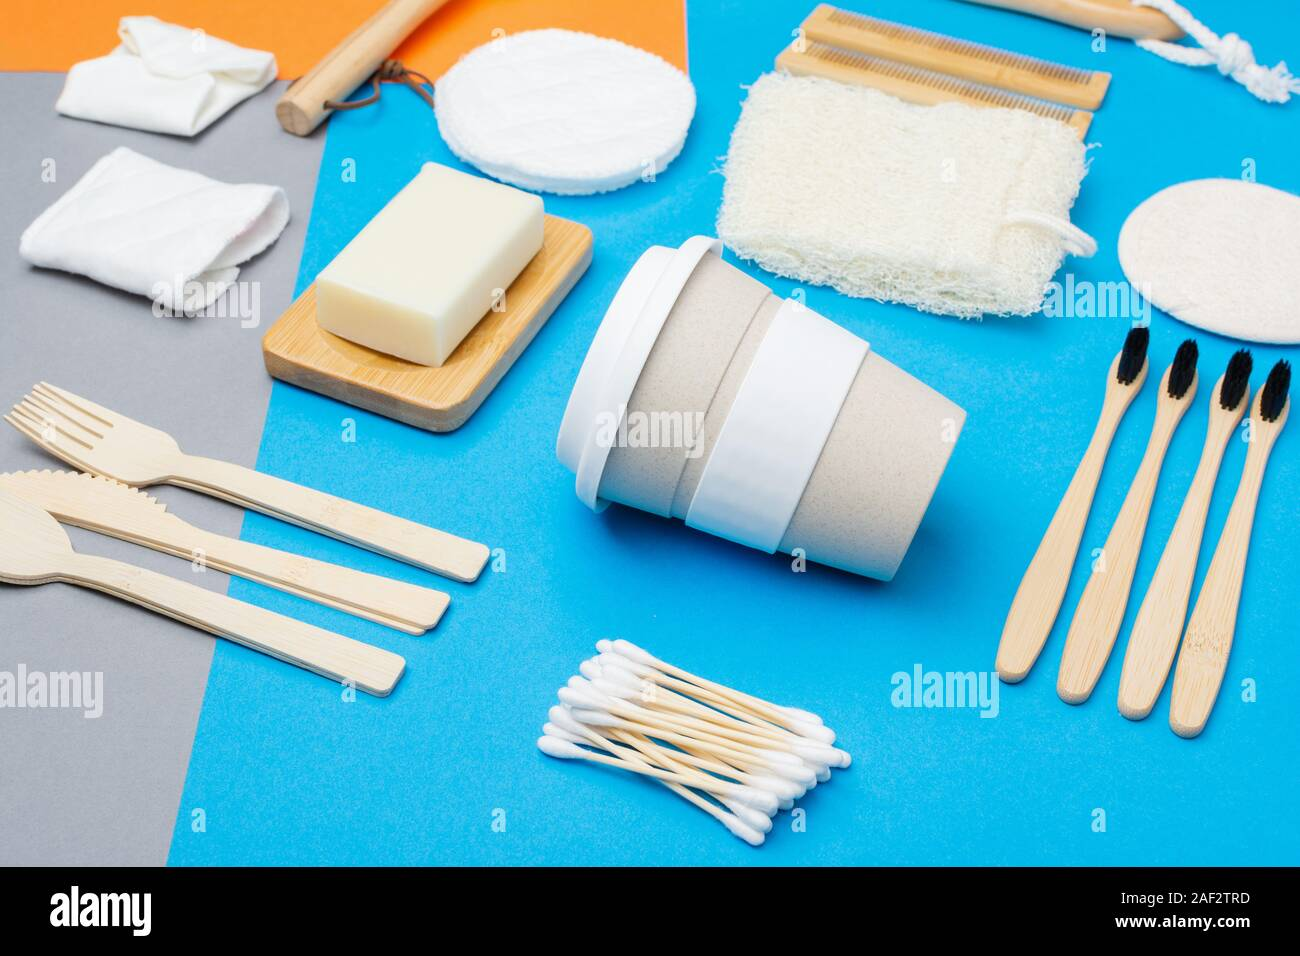 Zero waste eco friendly personal care products wooden brushes, bamboo toothbrushes, luffa, natural soaps, reusable coffee cup on colorful blue grey orange background, selective focus Stock Photo